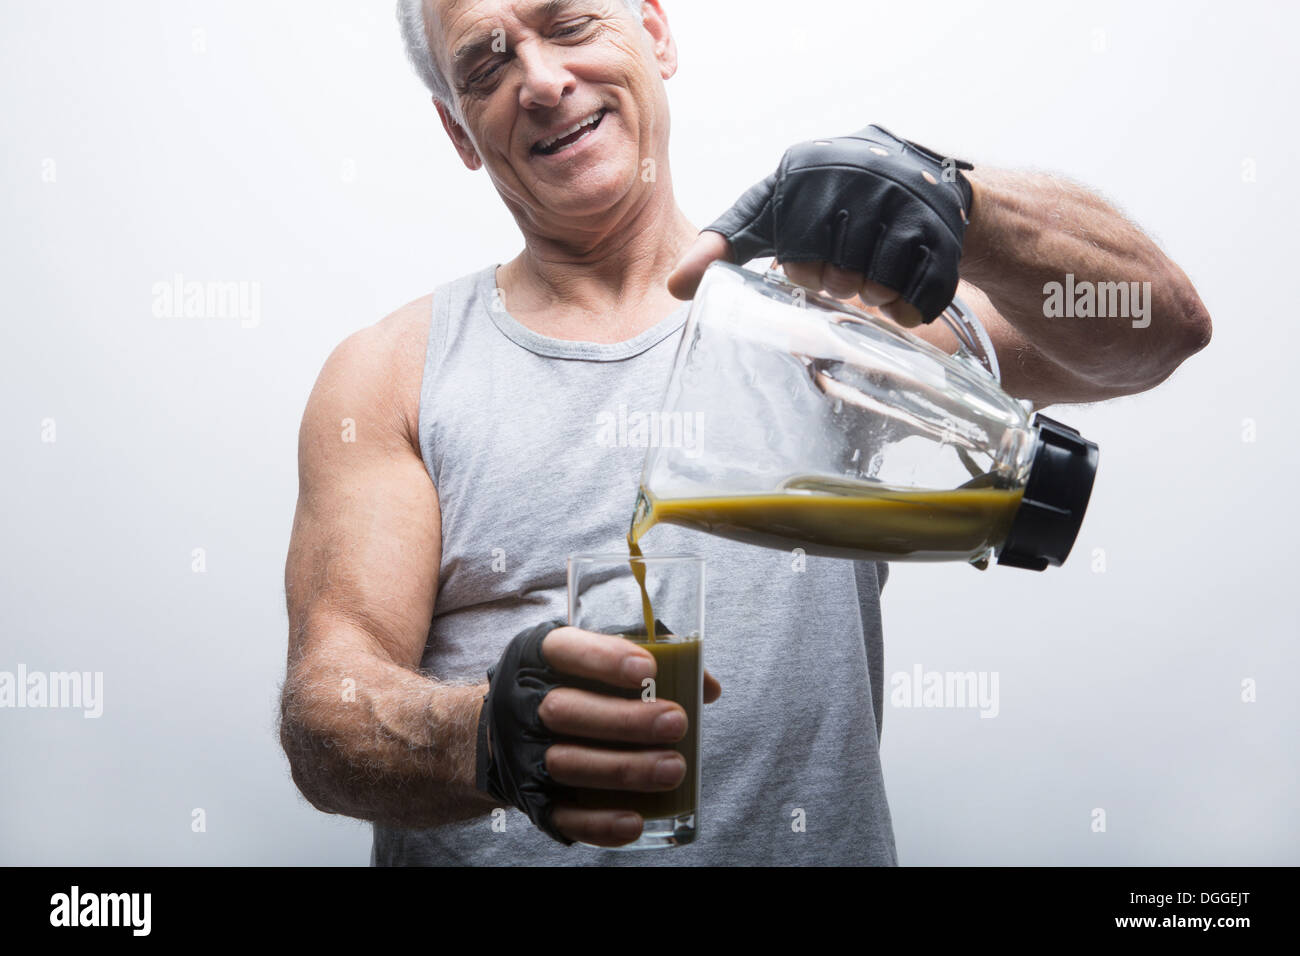 Senior man pouring smoothie from blender into glass - Stock Image